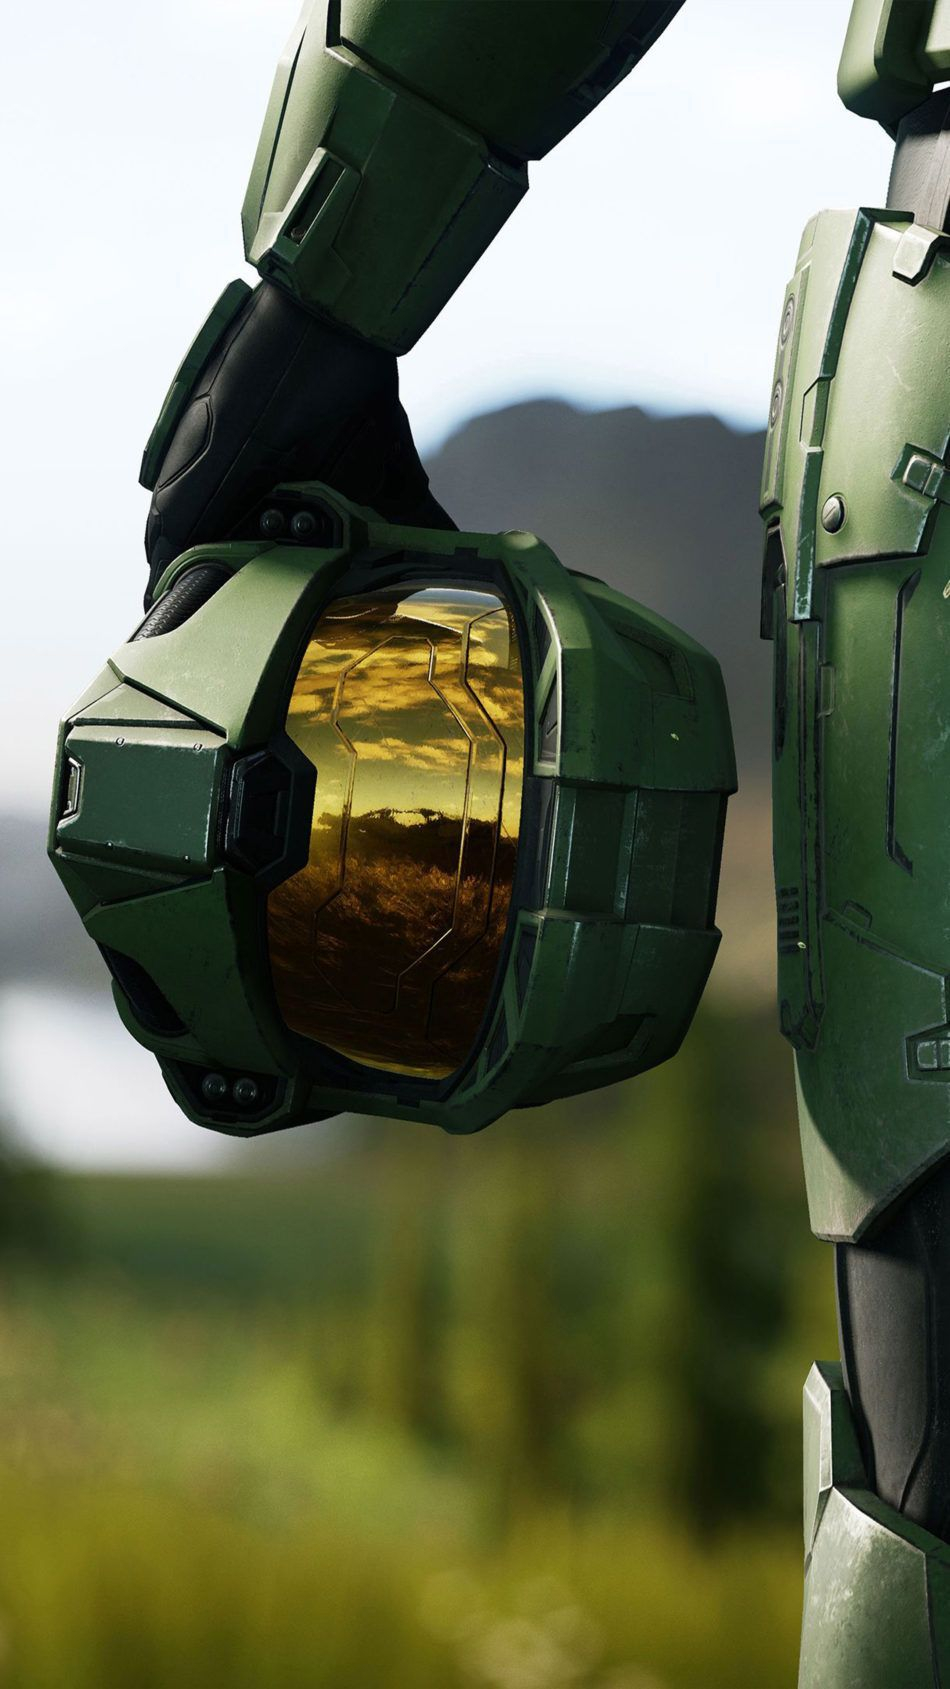 Operation Senseo In 2020 Halo Master Chief Halo Halo Xbox